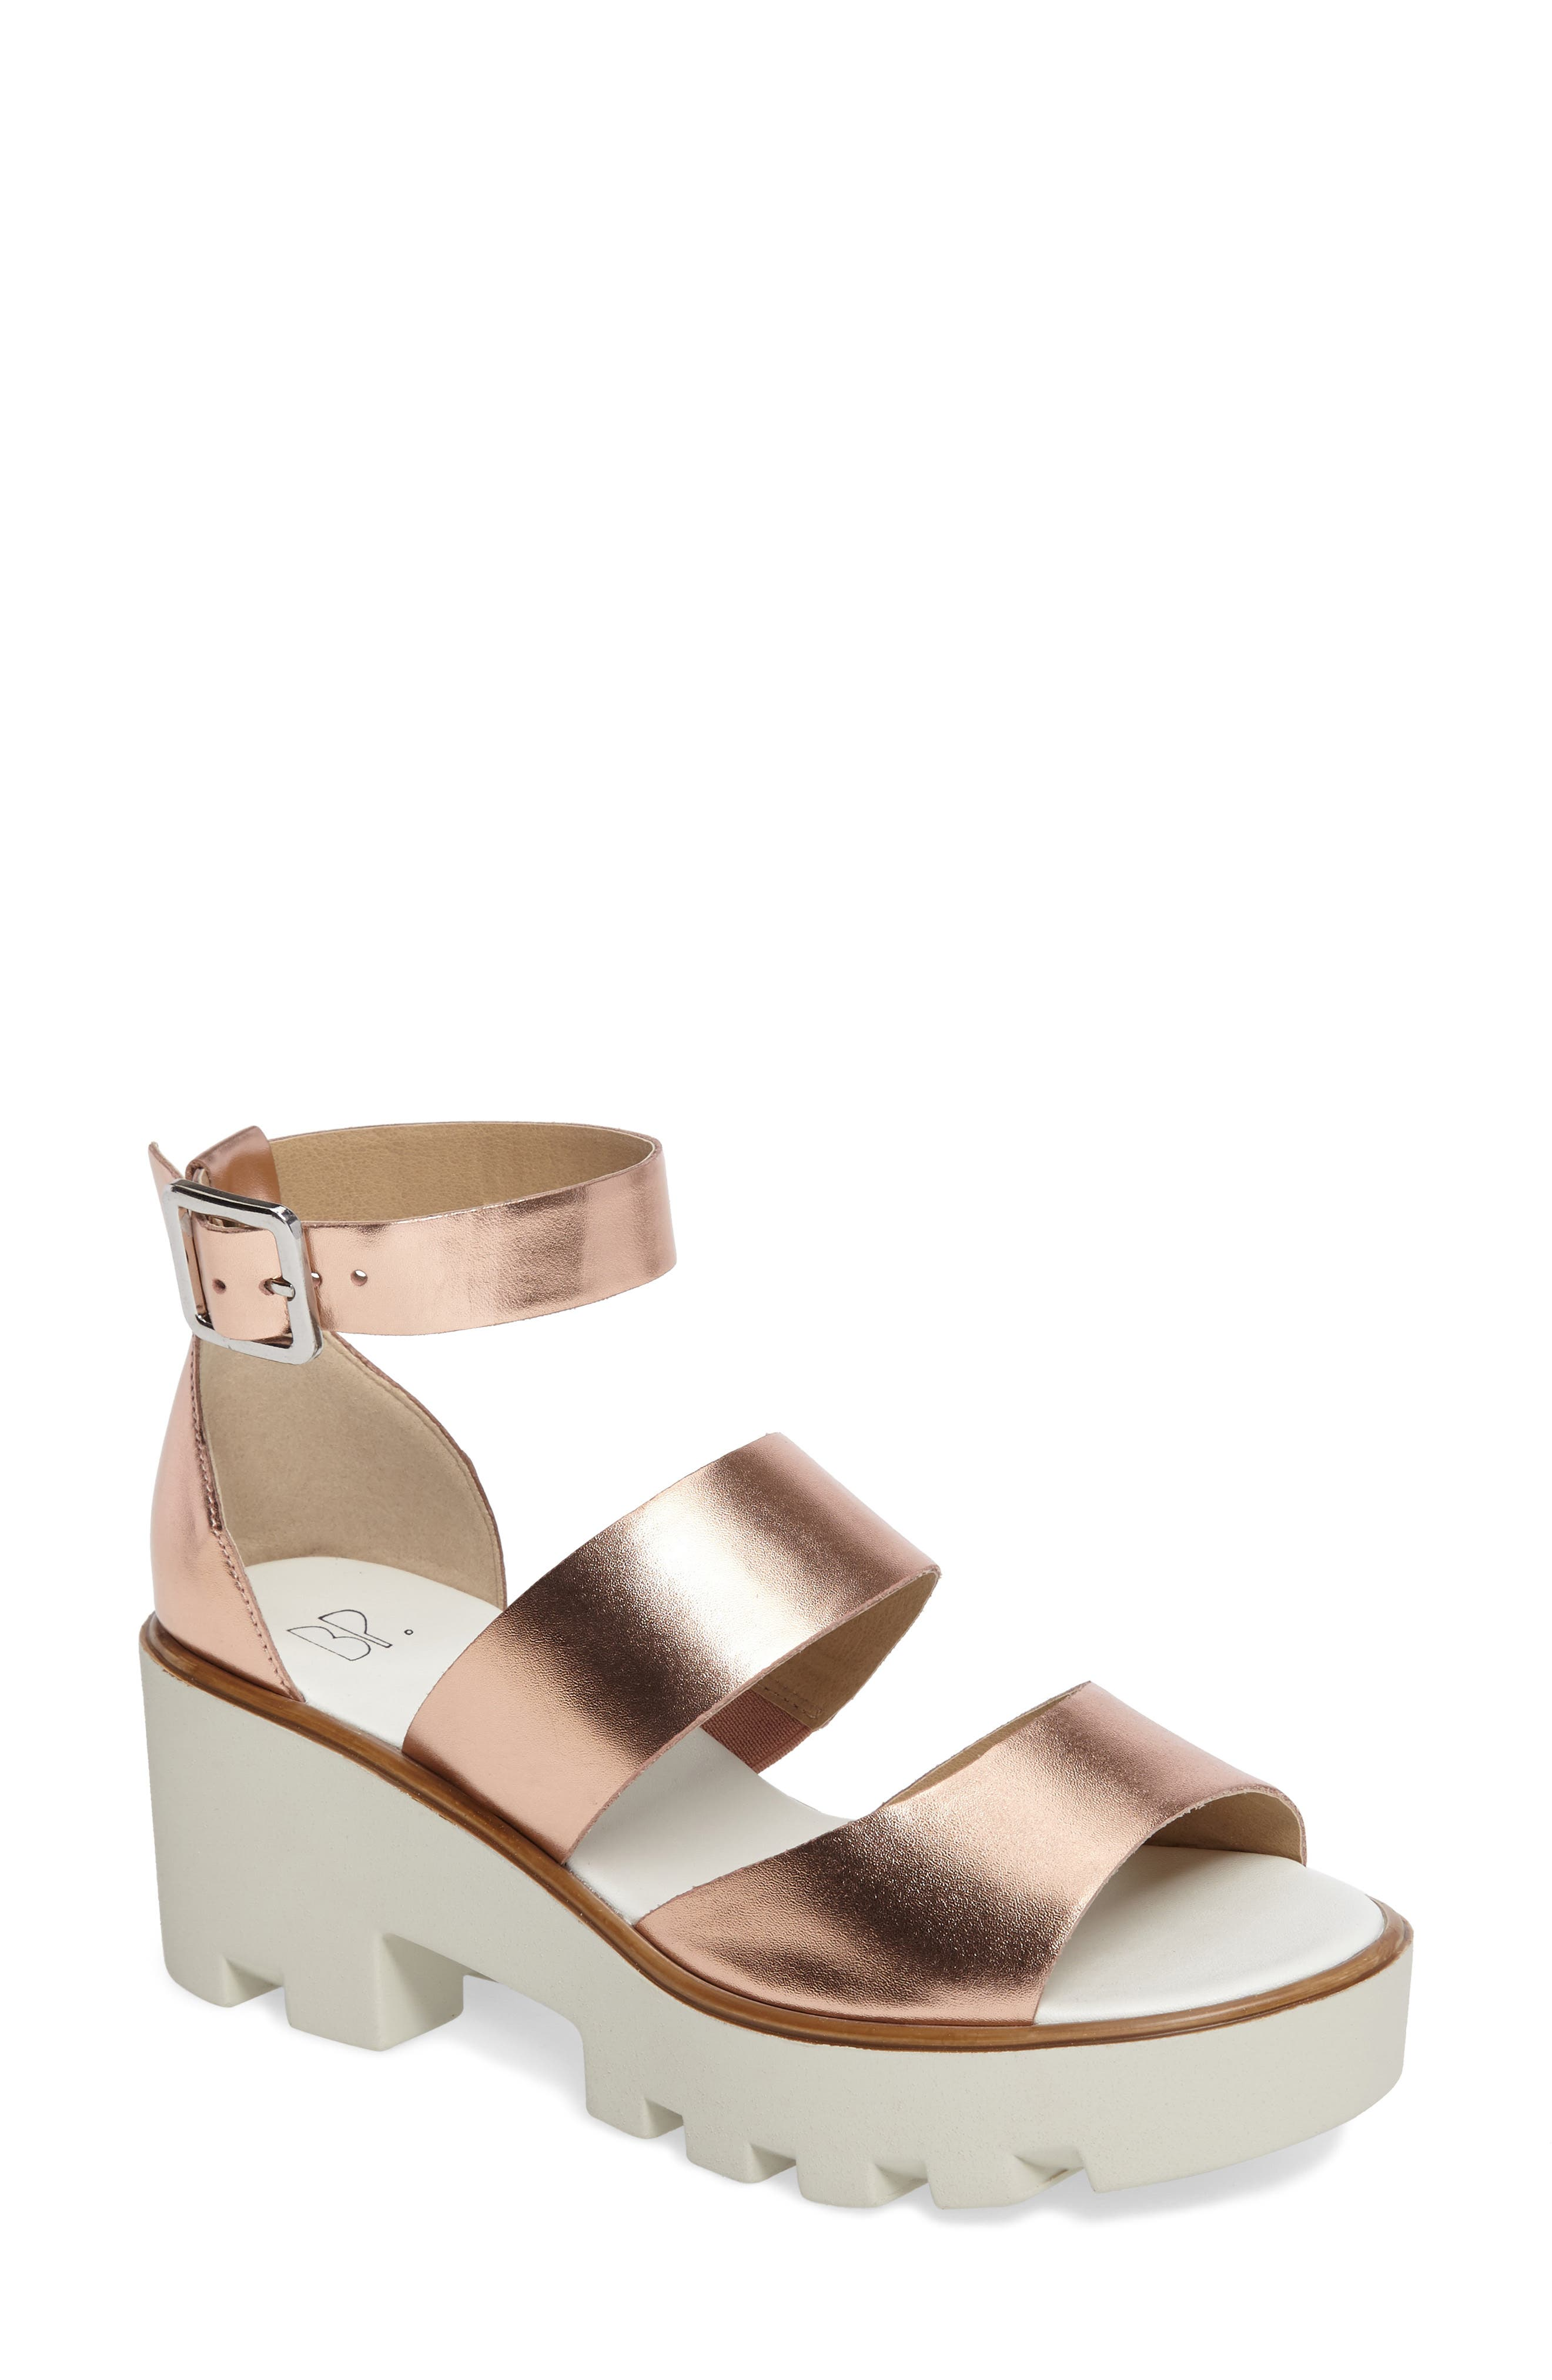 Alternate Image 1 Selected - BP. Rowan Platform Sandal (Women)